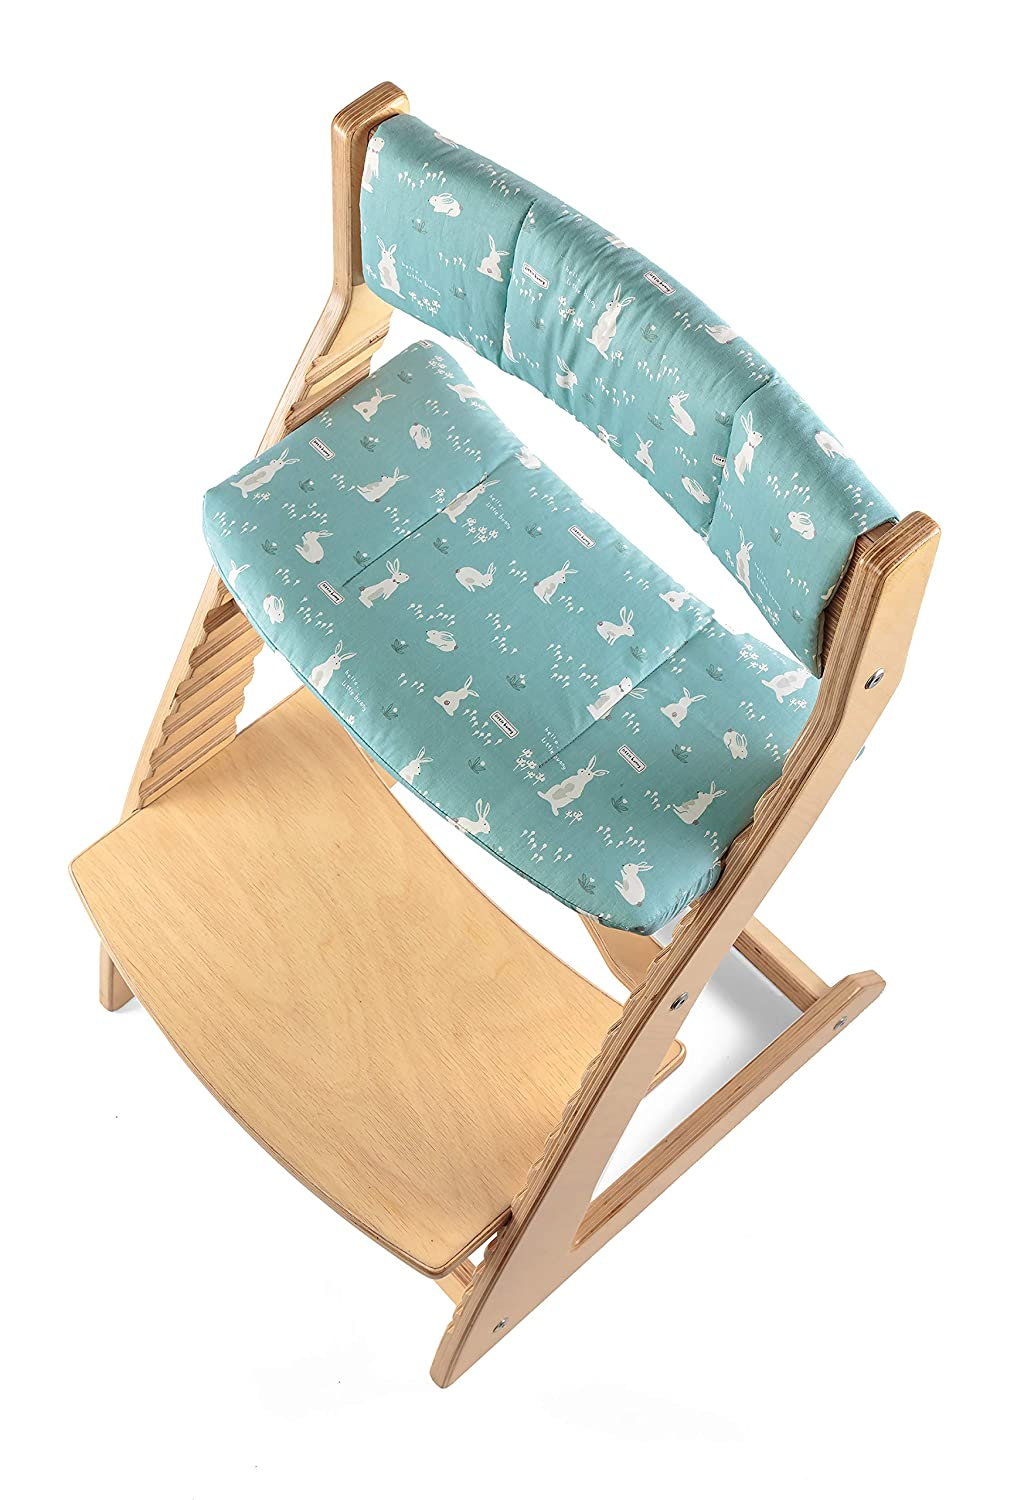 Chair Cushion for Heartwood Adjustable Chair with Cactus Pattern Set with Backrest and Seat Cover